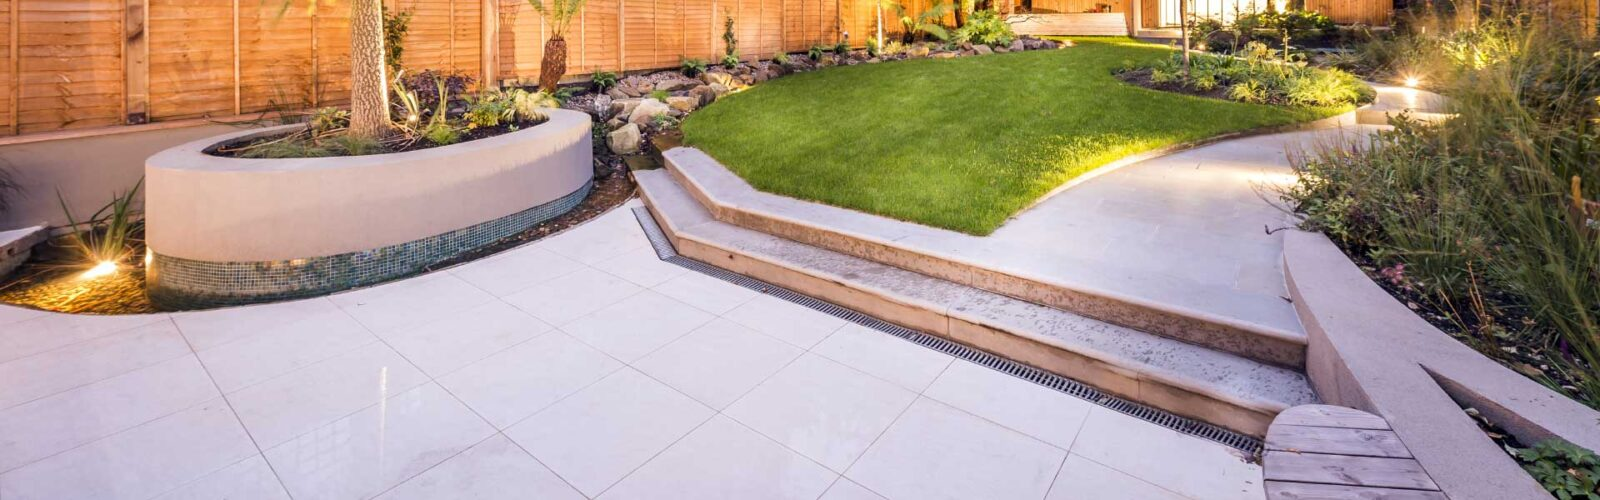 Landscaping Essex Areas